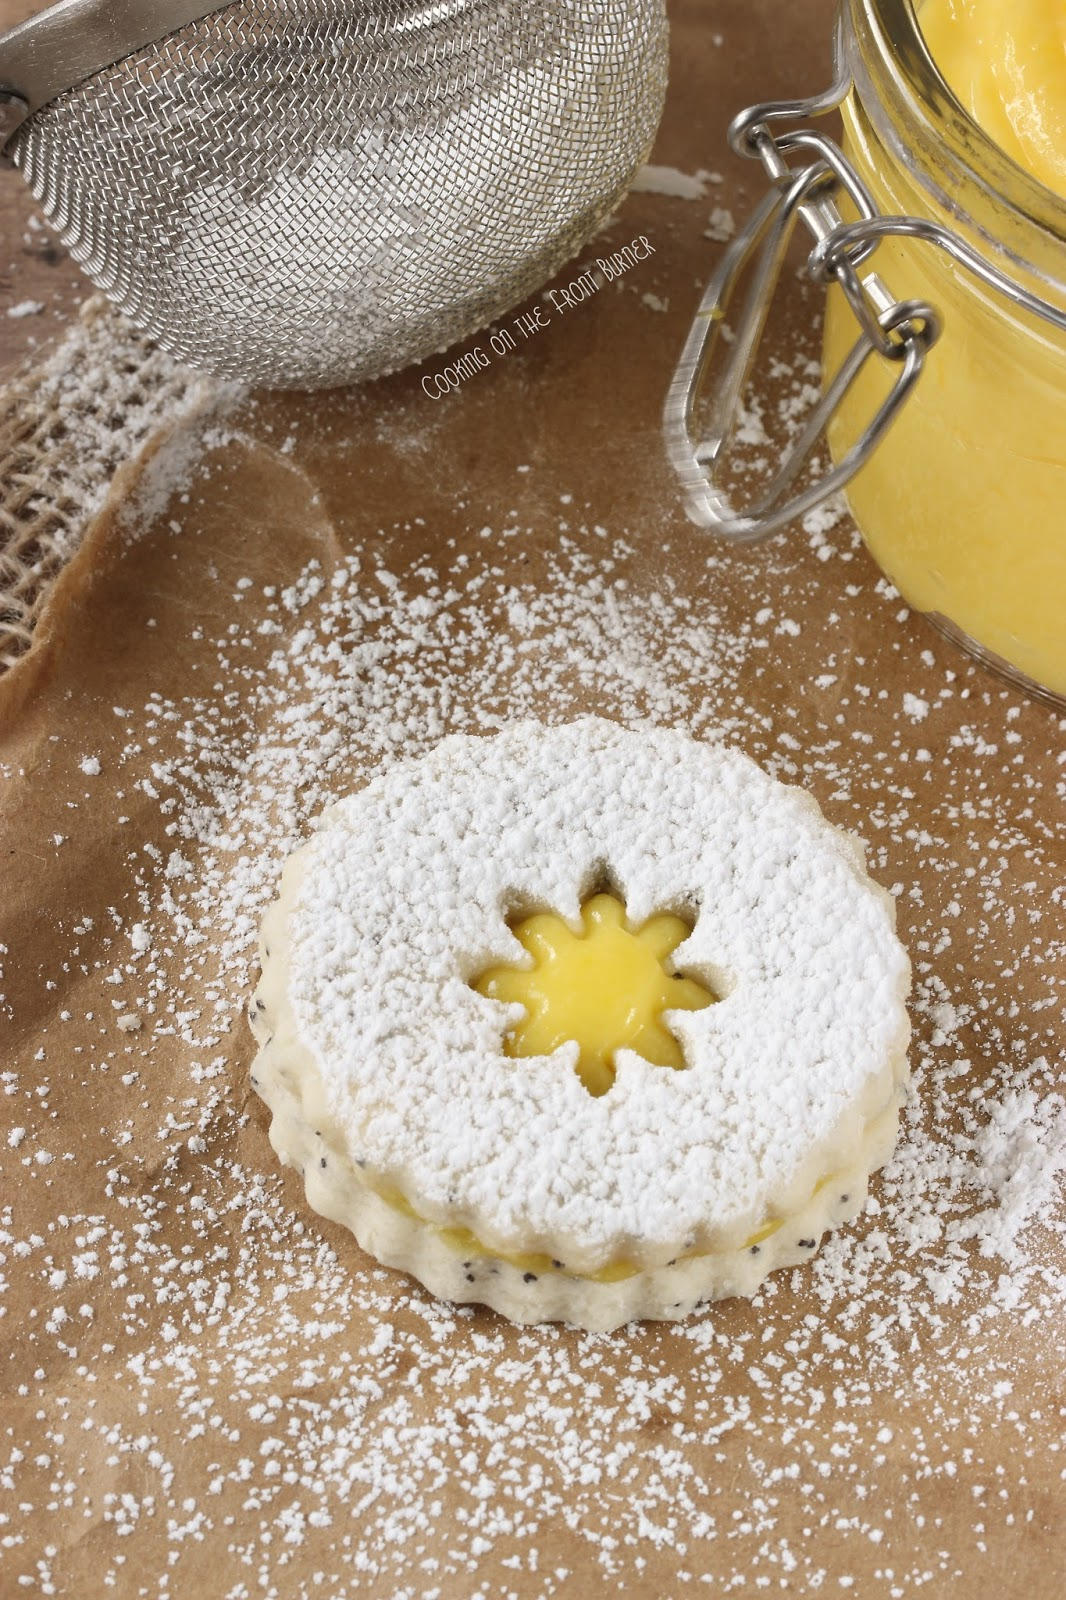 Poppy Seed Lemon Linzer Cookies | Cooking on the Front Burner #linzercookies